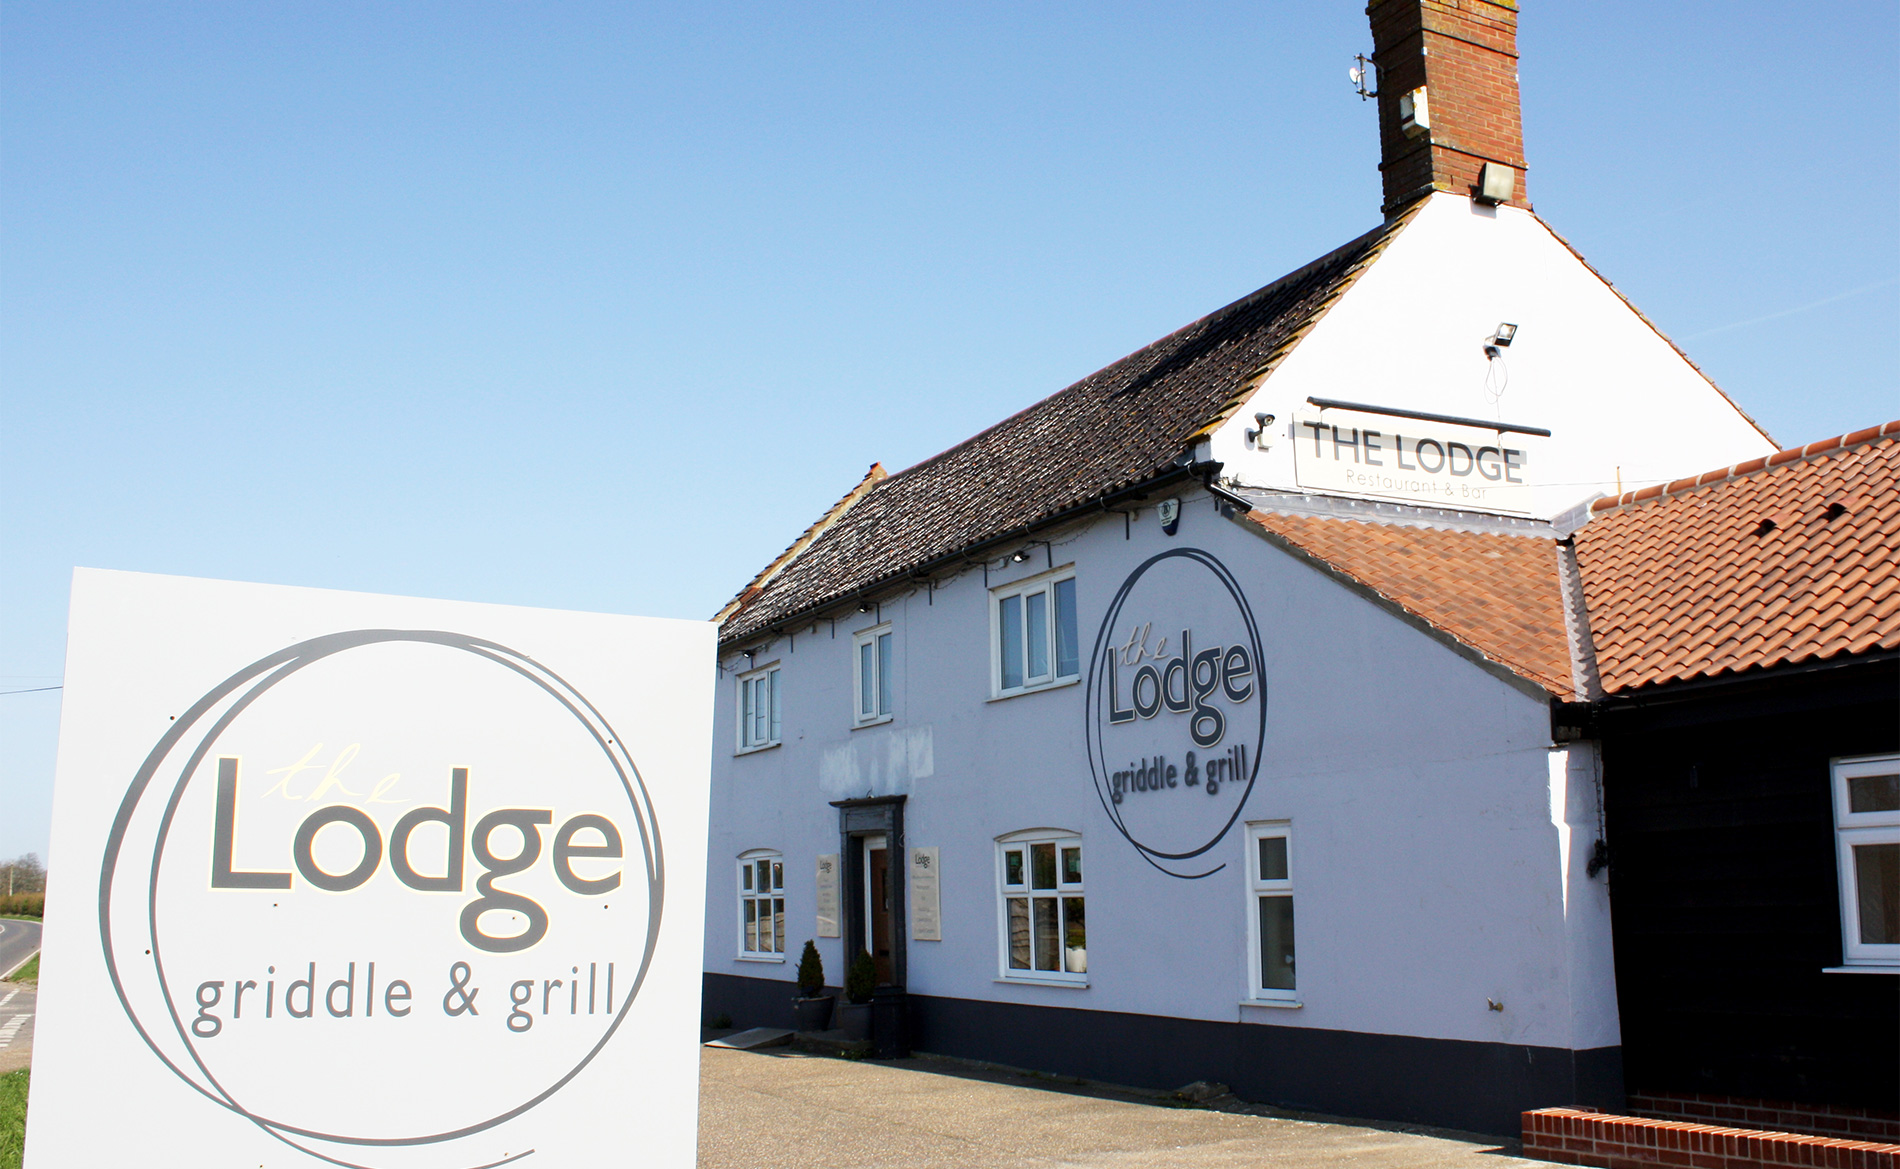 The Lodge Griddle & Grill restaurant between Norwich and Dereham.